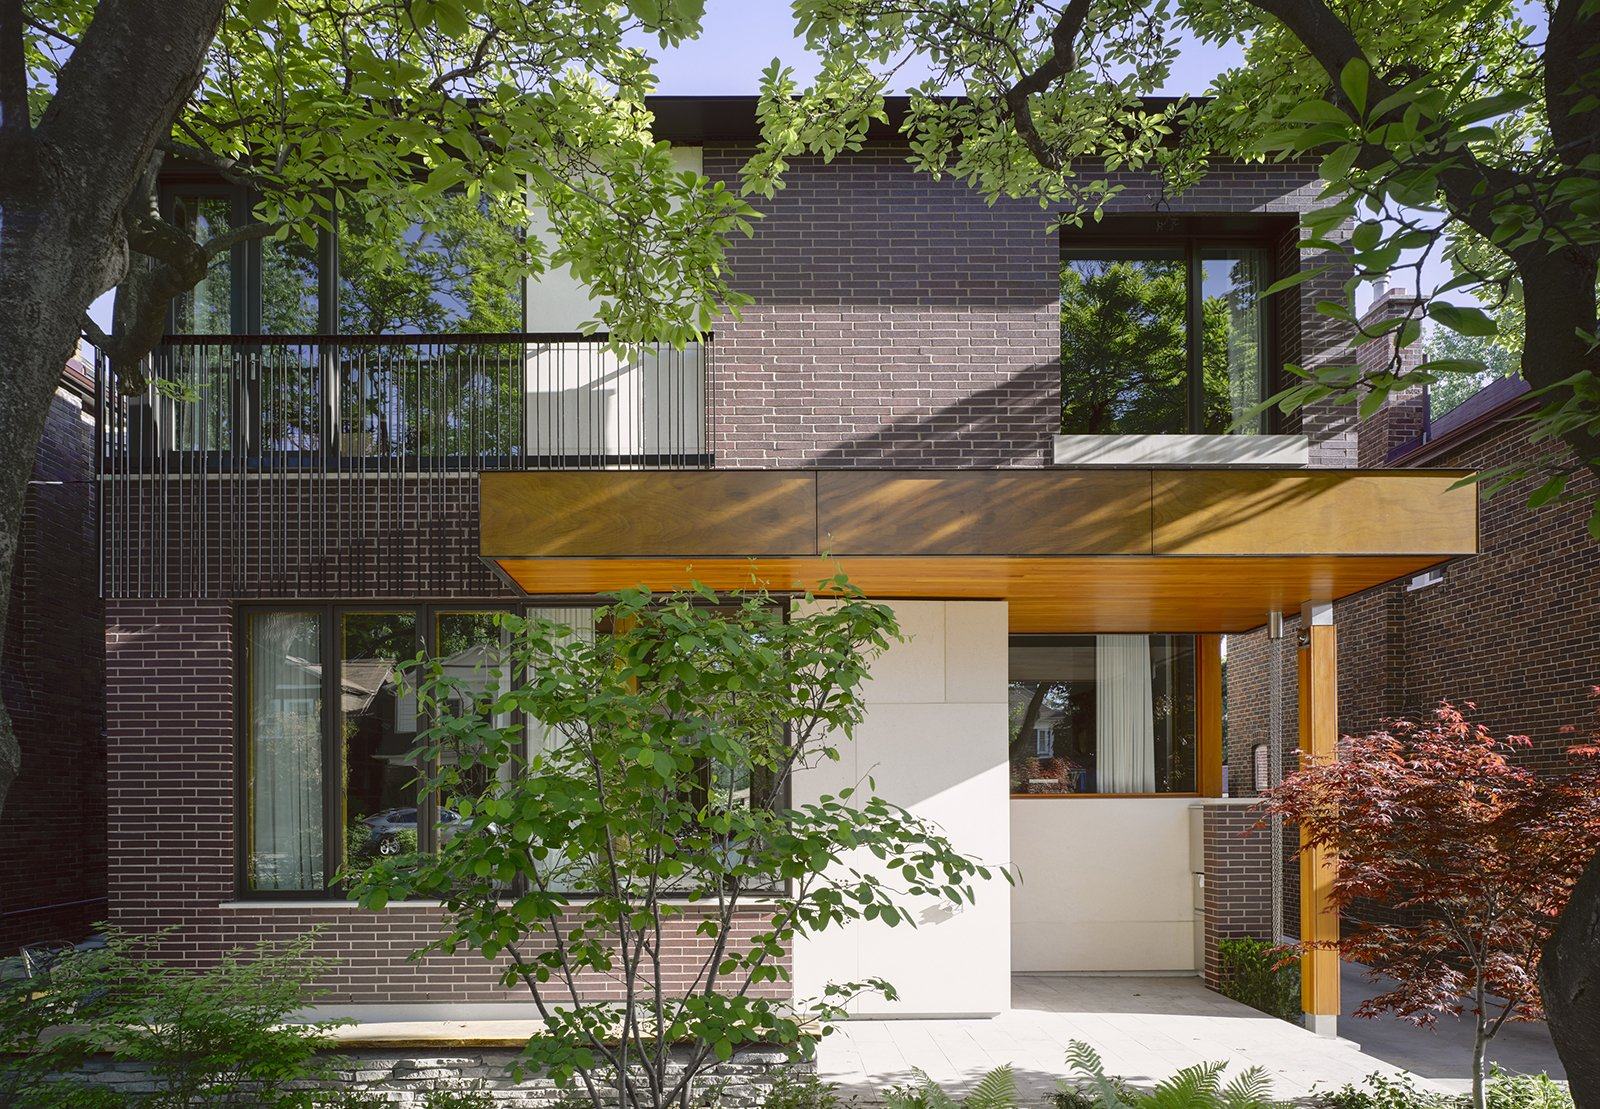 Located in Toronto, the Bedford Park House embodies an architectual hat trick: it's smart from a technological standpoint, it's energy efficient, and it's designed so the residents, a doctor and his wife, can age in place. Architect Alex Tedesco, a senior partner at LGA Architectural Partners, created a thoughtful design grounded in the advanced building science and that embodies the principles of modernism. The facade is clad in Rum Raison Velour brick by Belden with Douglas fir accents.  Photo 1 of 11 in Smart Tech Makes this Modern Home Ultra Energy Efficient